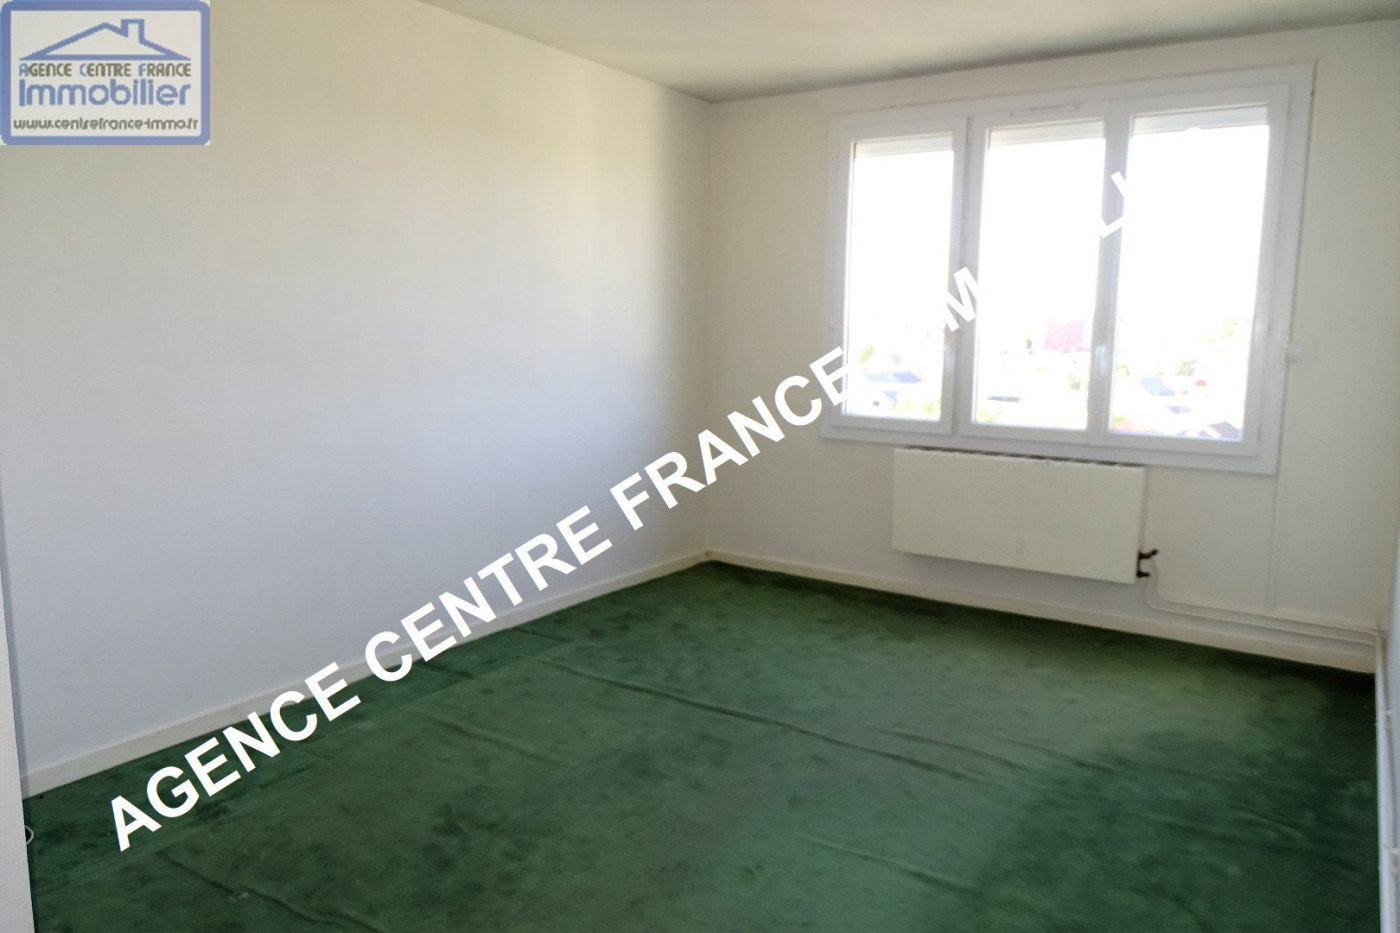 A vendre Bourges 030011268 Agence centre france immobilier